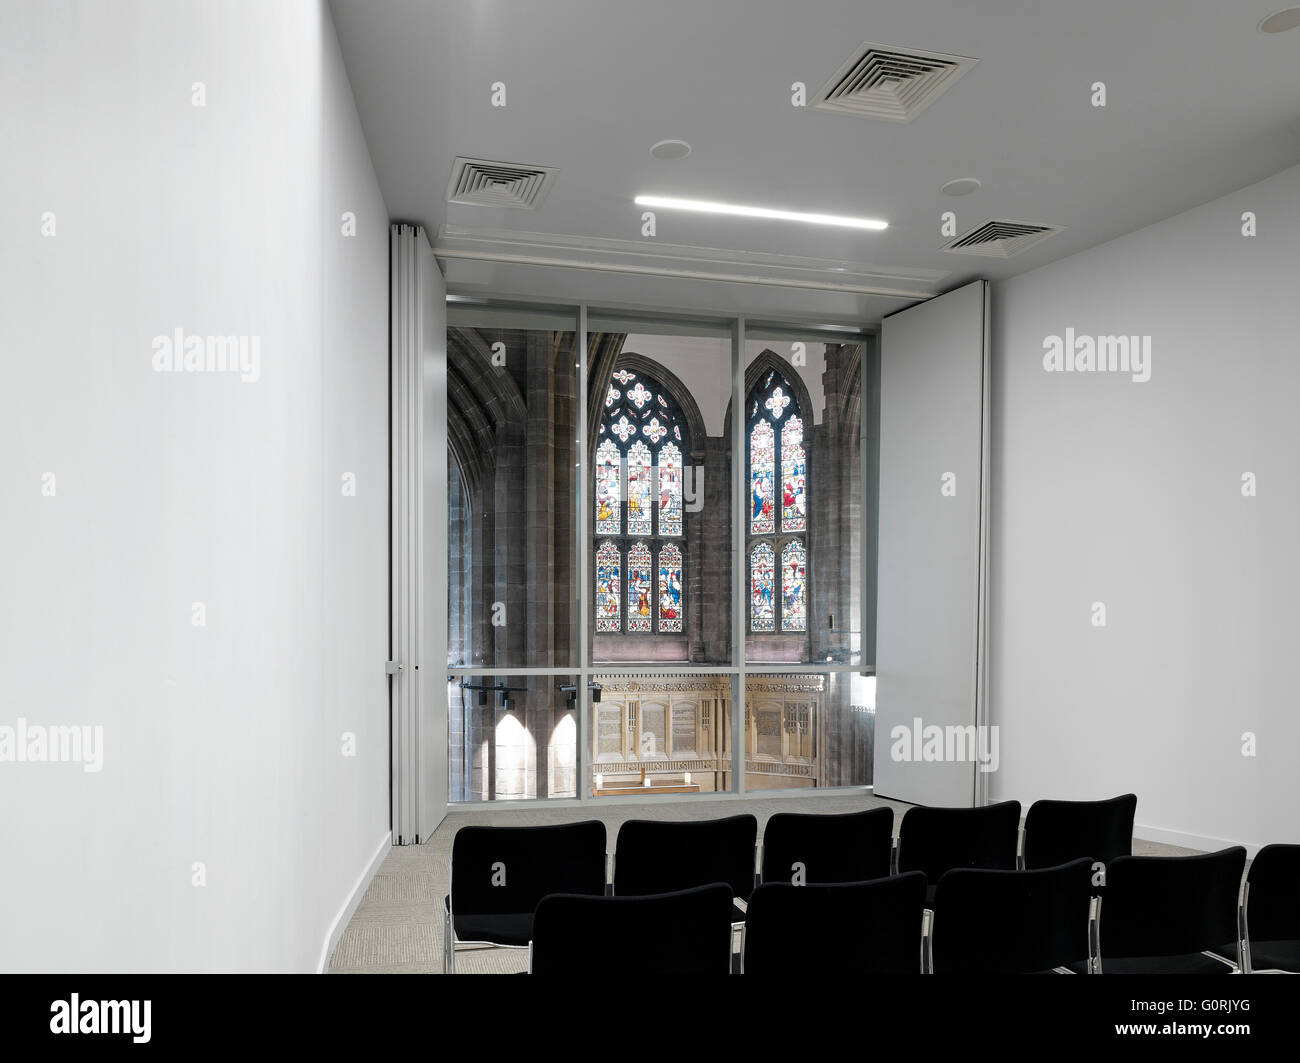 All Souls, Bolton, England. White room with rows of chairs. Stained glass windows. - Stock Image